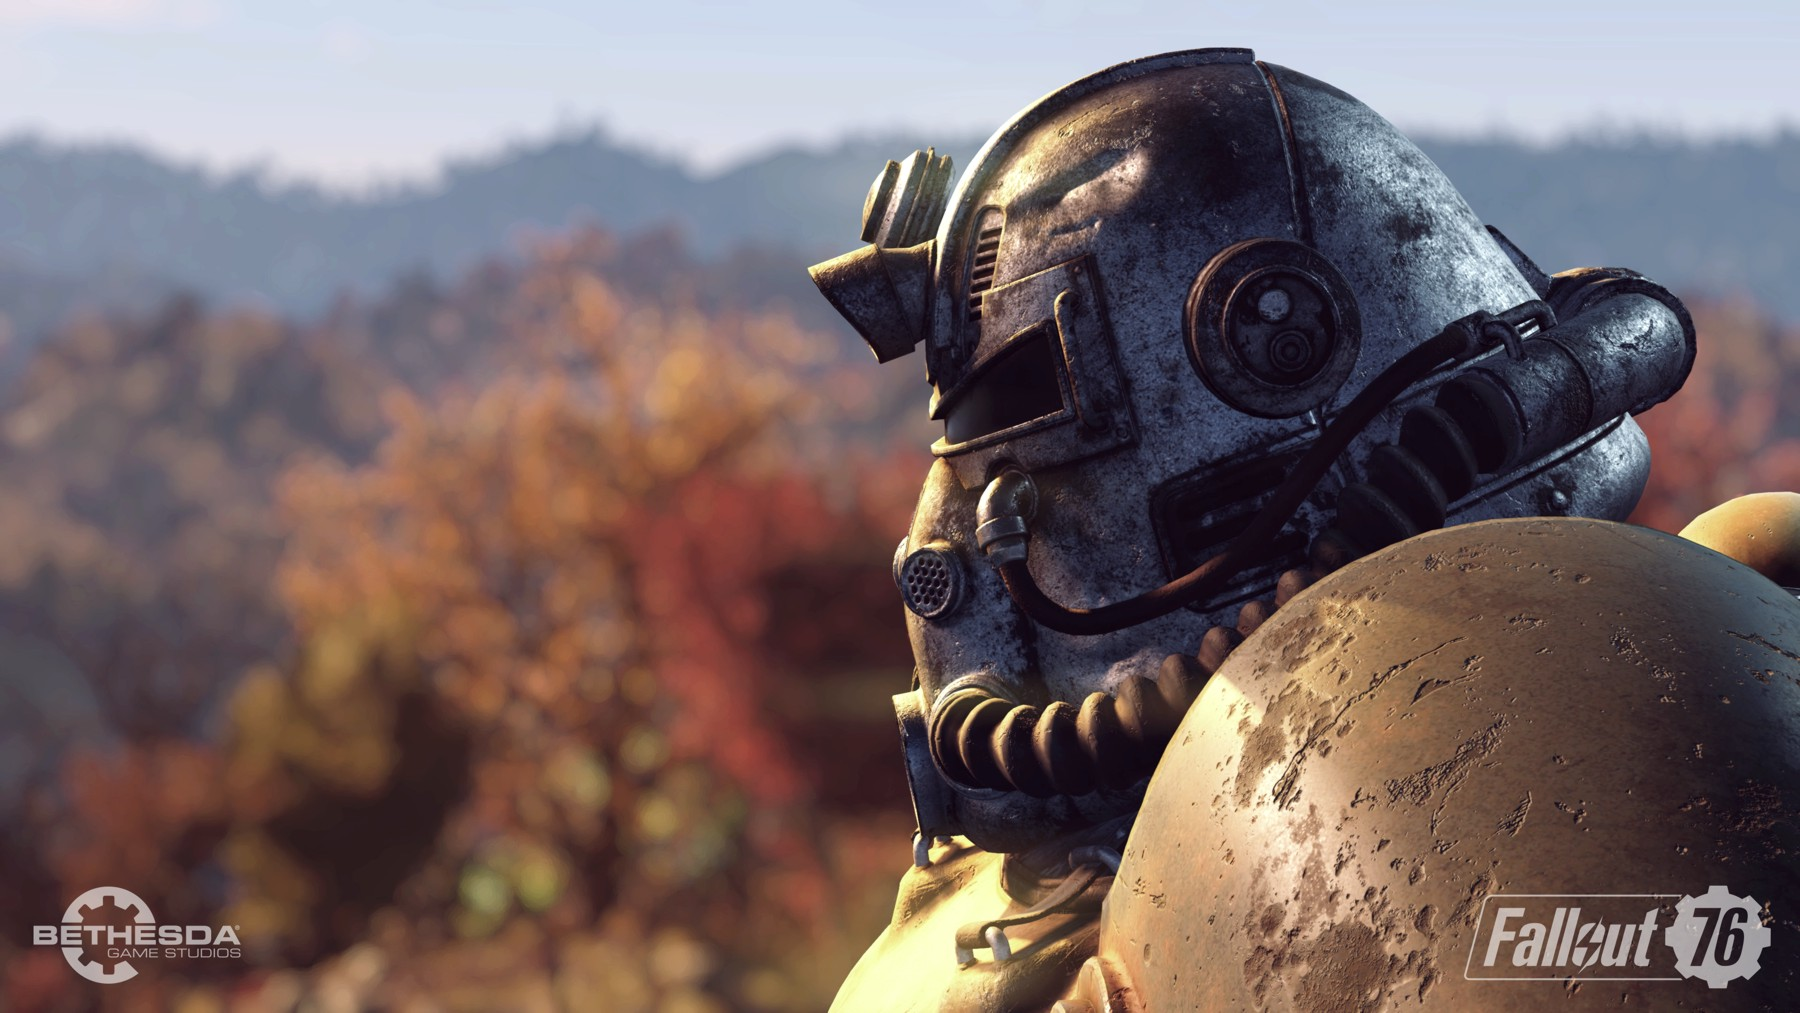 detail Fallout 76 Power Armor Edition - Xone